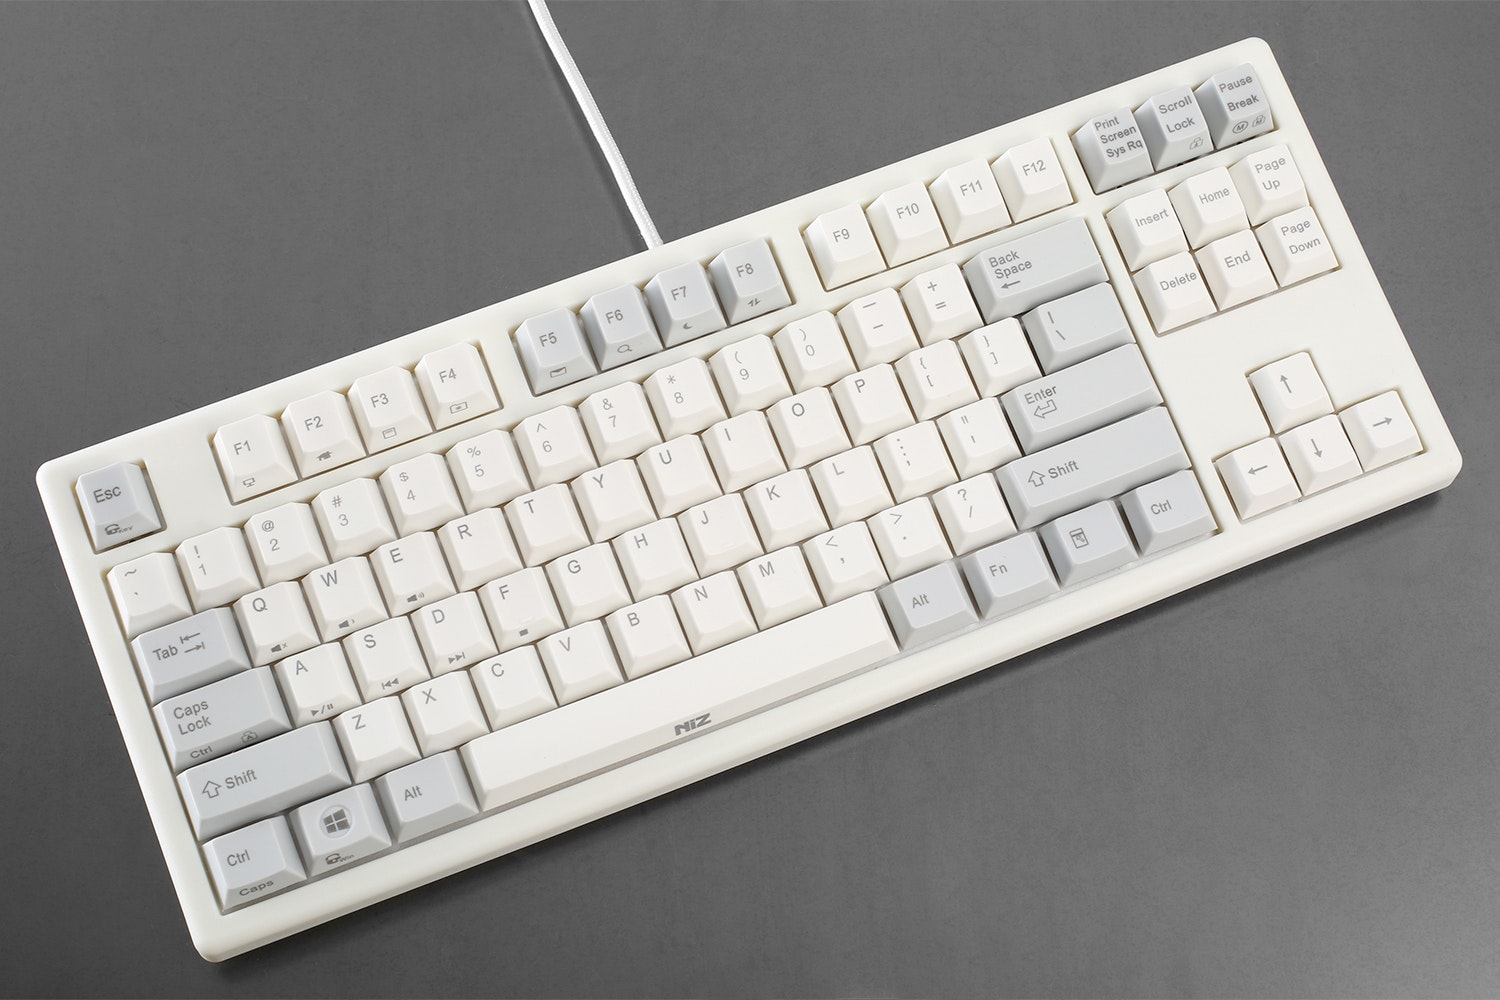 Plum 87 Electro-Capacitive Keyboard